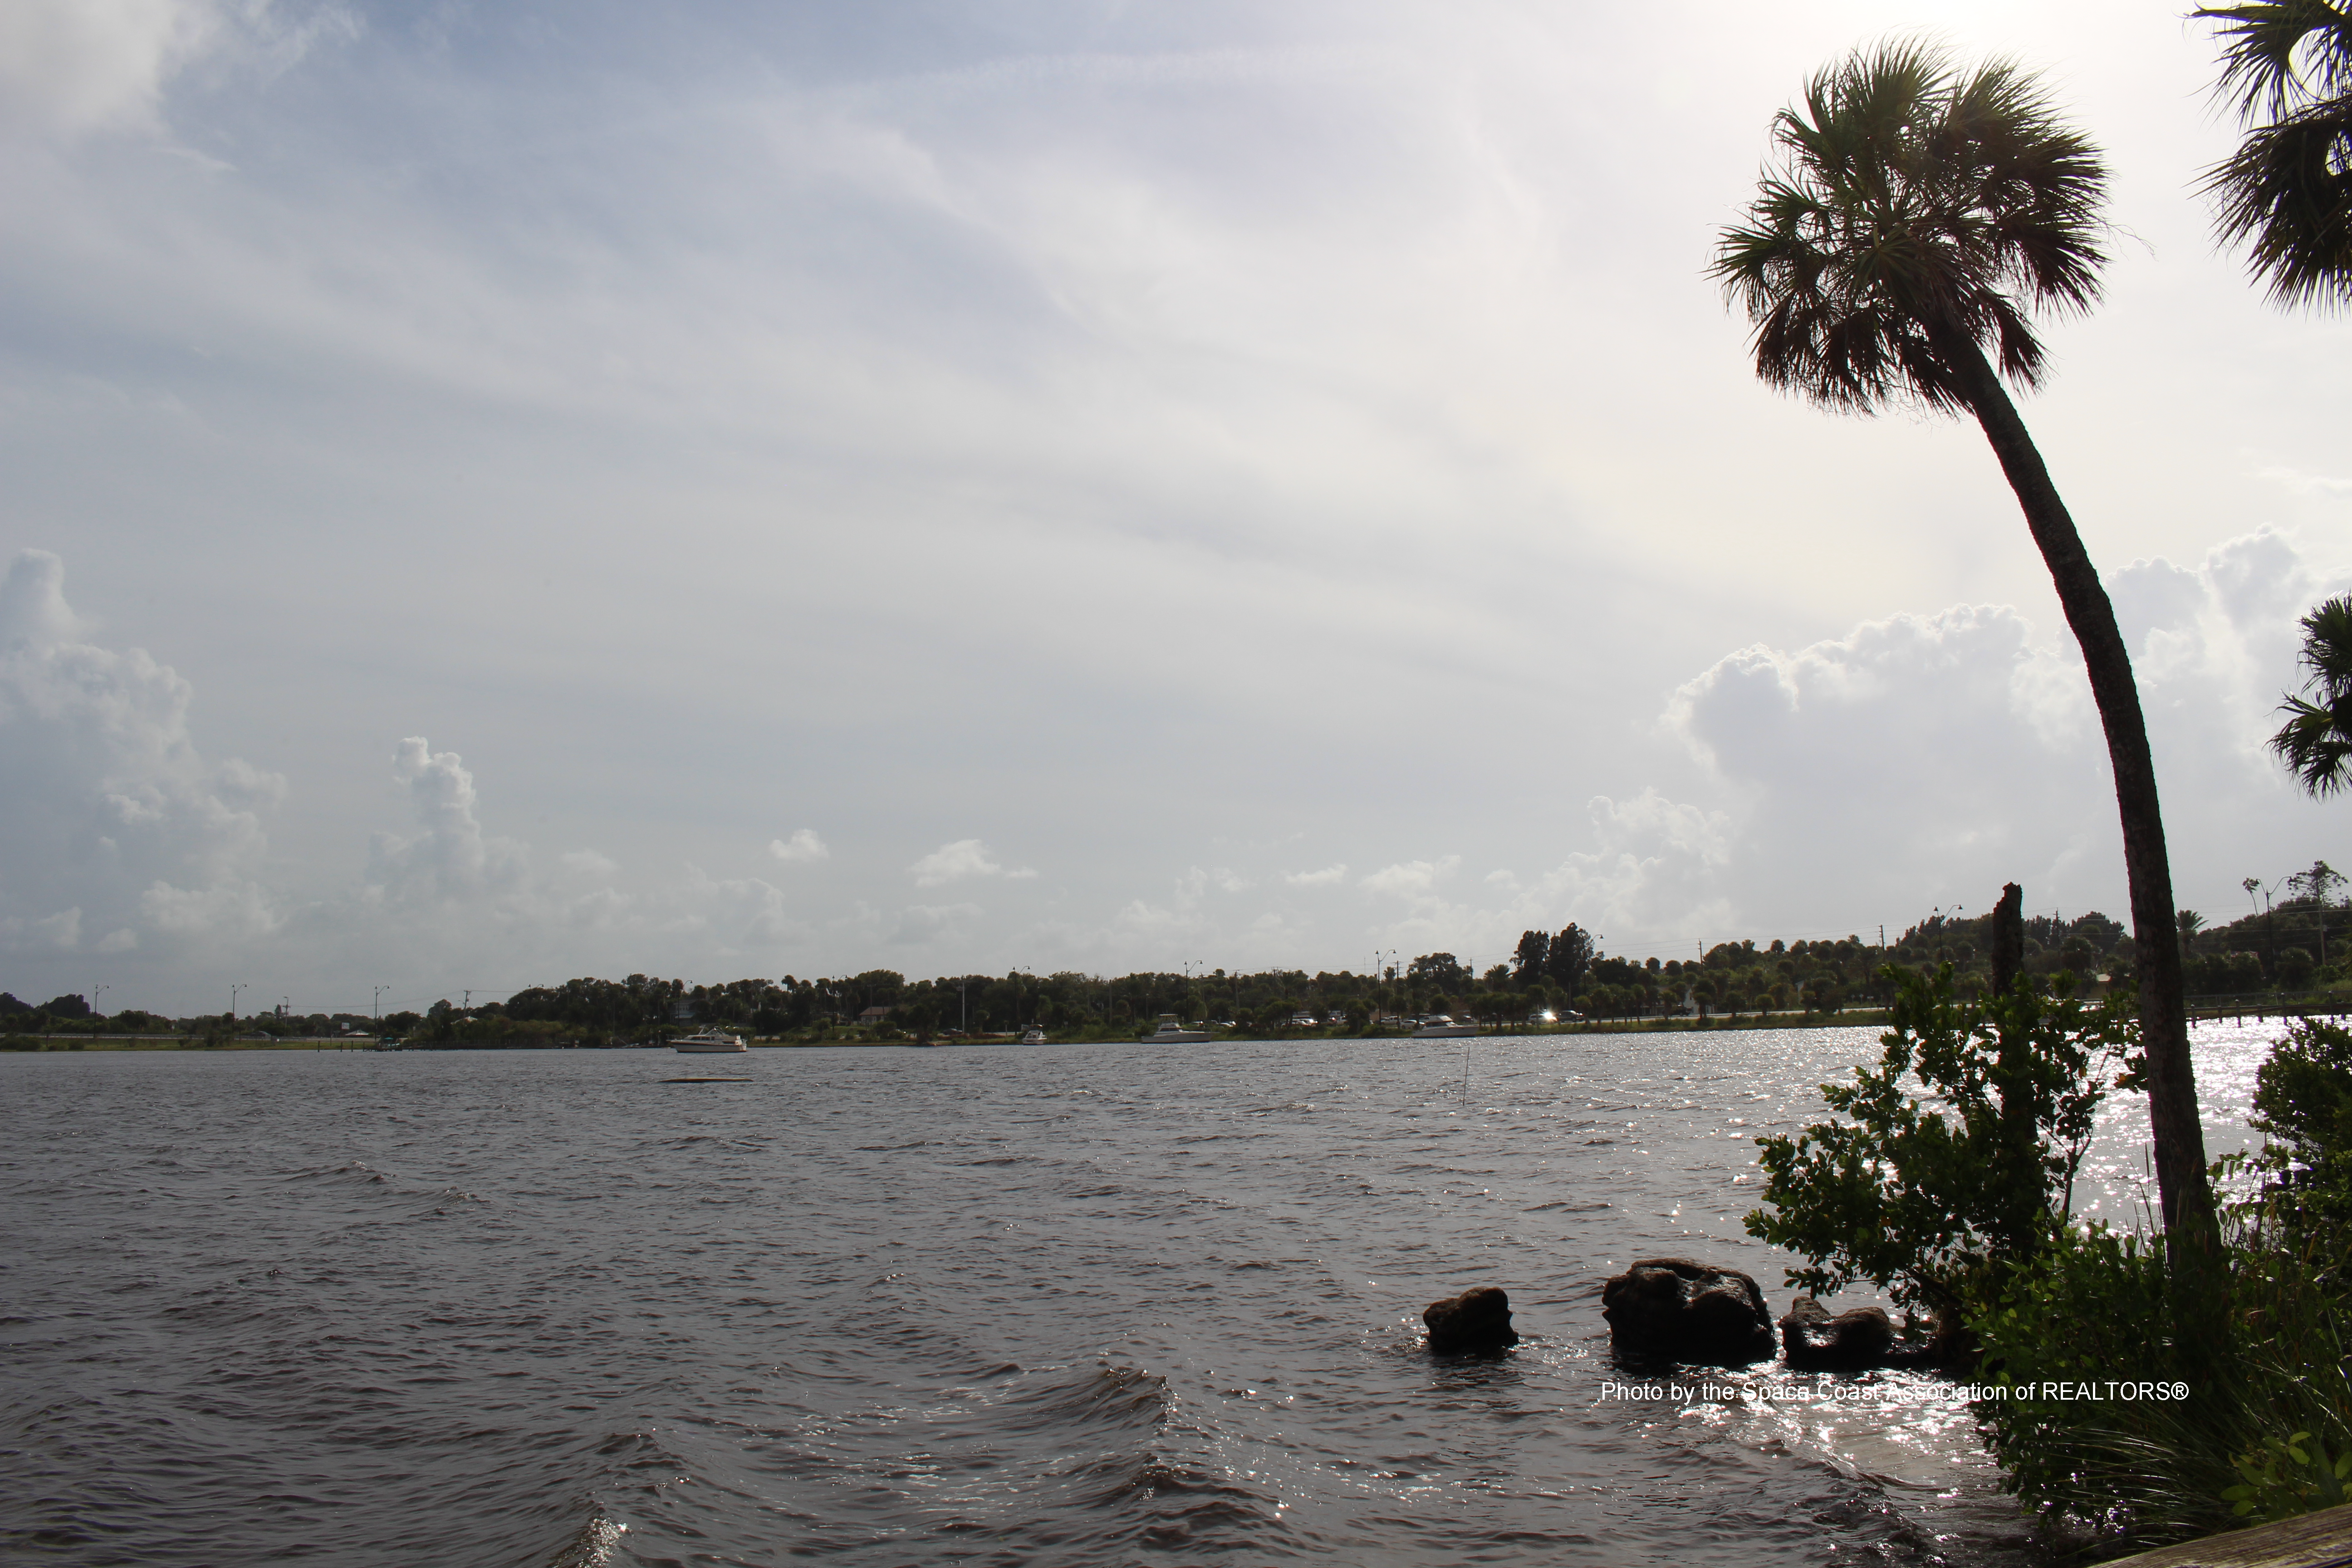 view of water from shore with palm tree on right side in Palm Bay, Florida